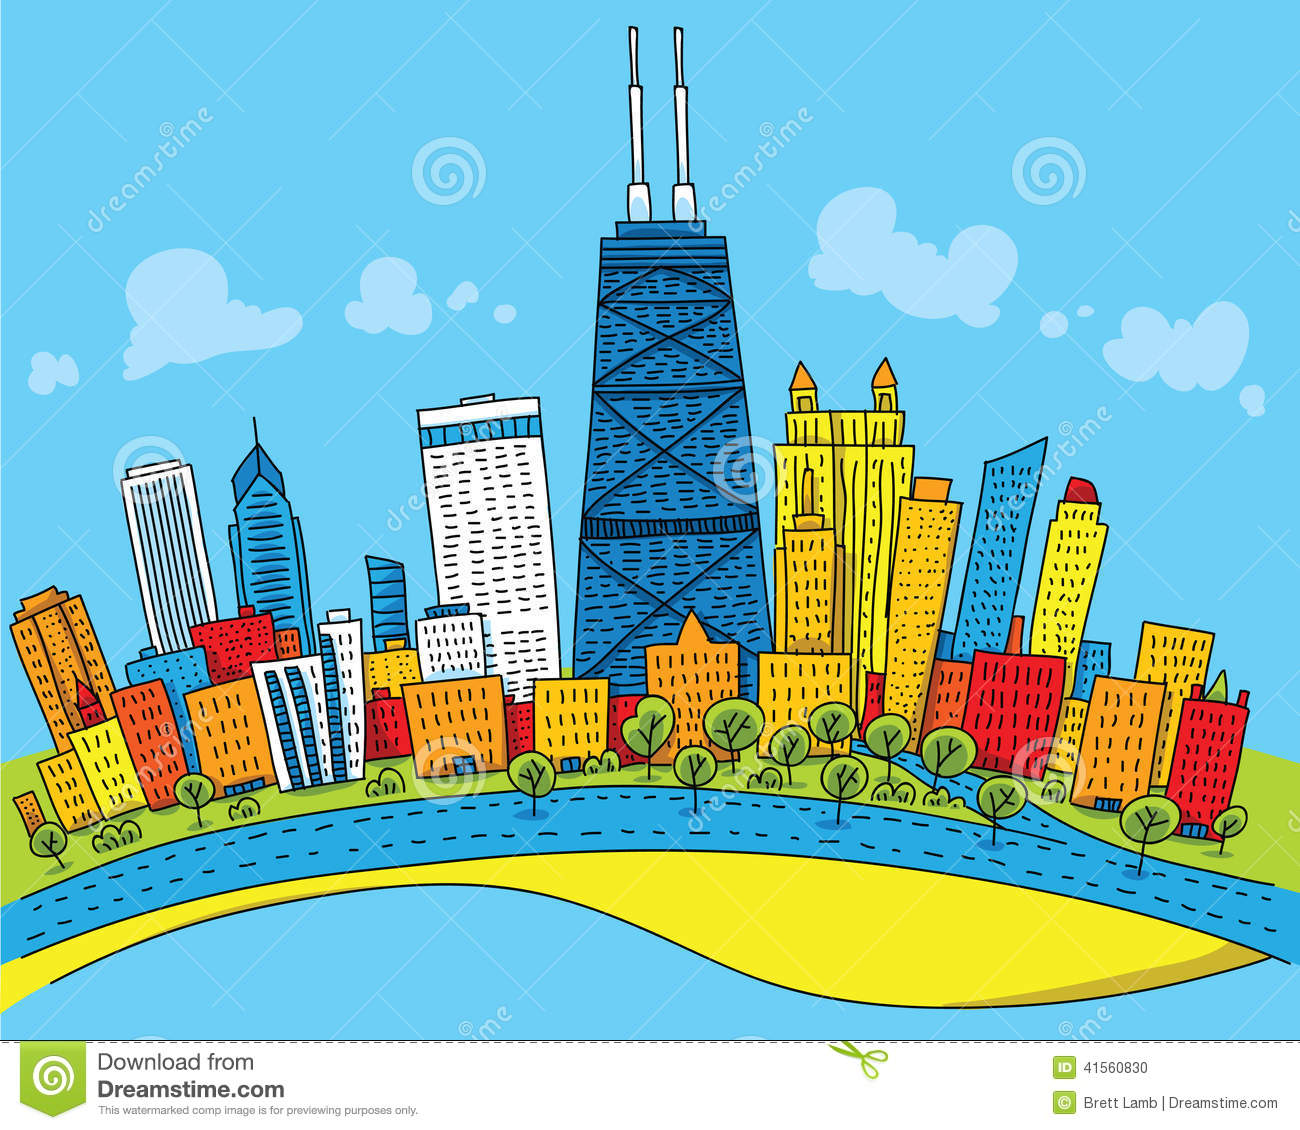 Chicago clipart #13, Download drawings